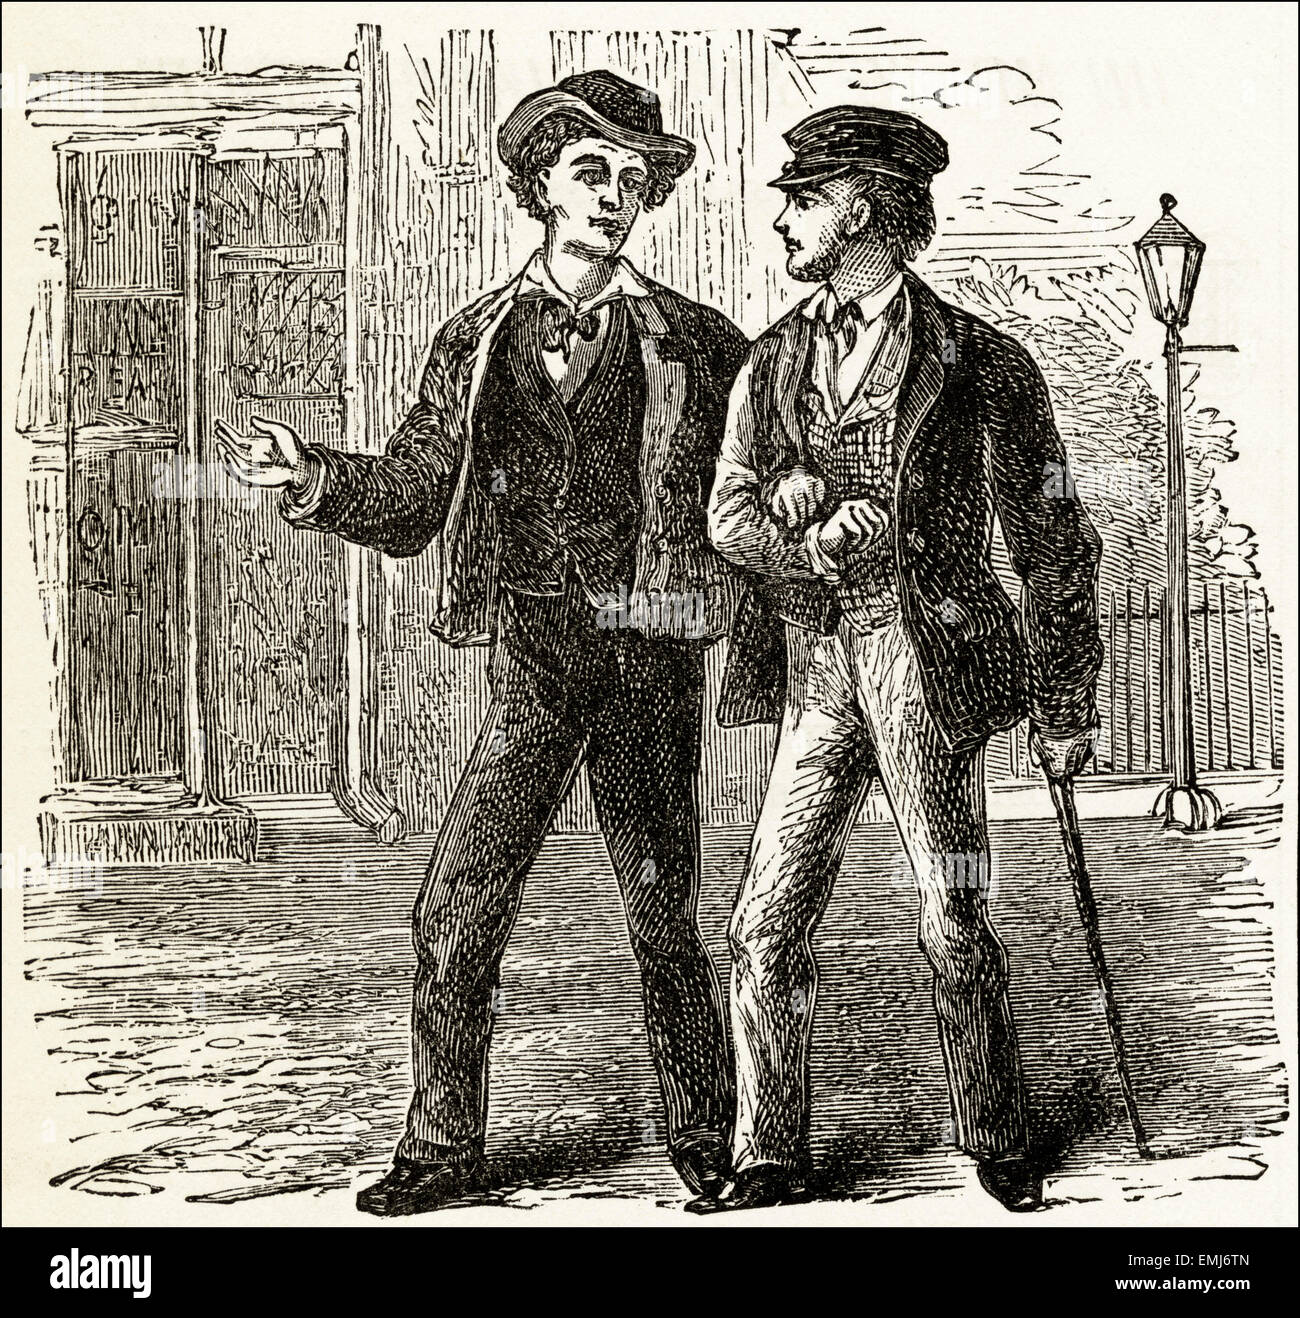 Street scene two men walking to the pub. Victorian woodcut engraving dated 1890 - Stock Image